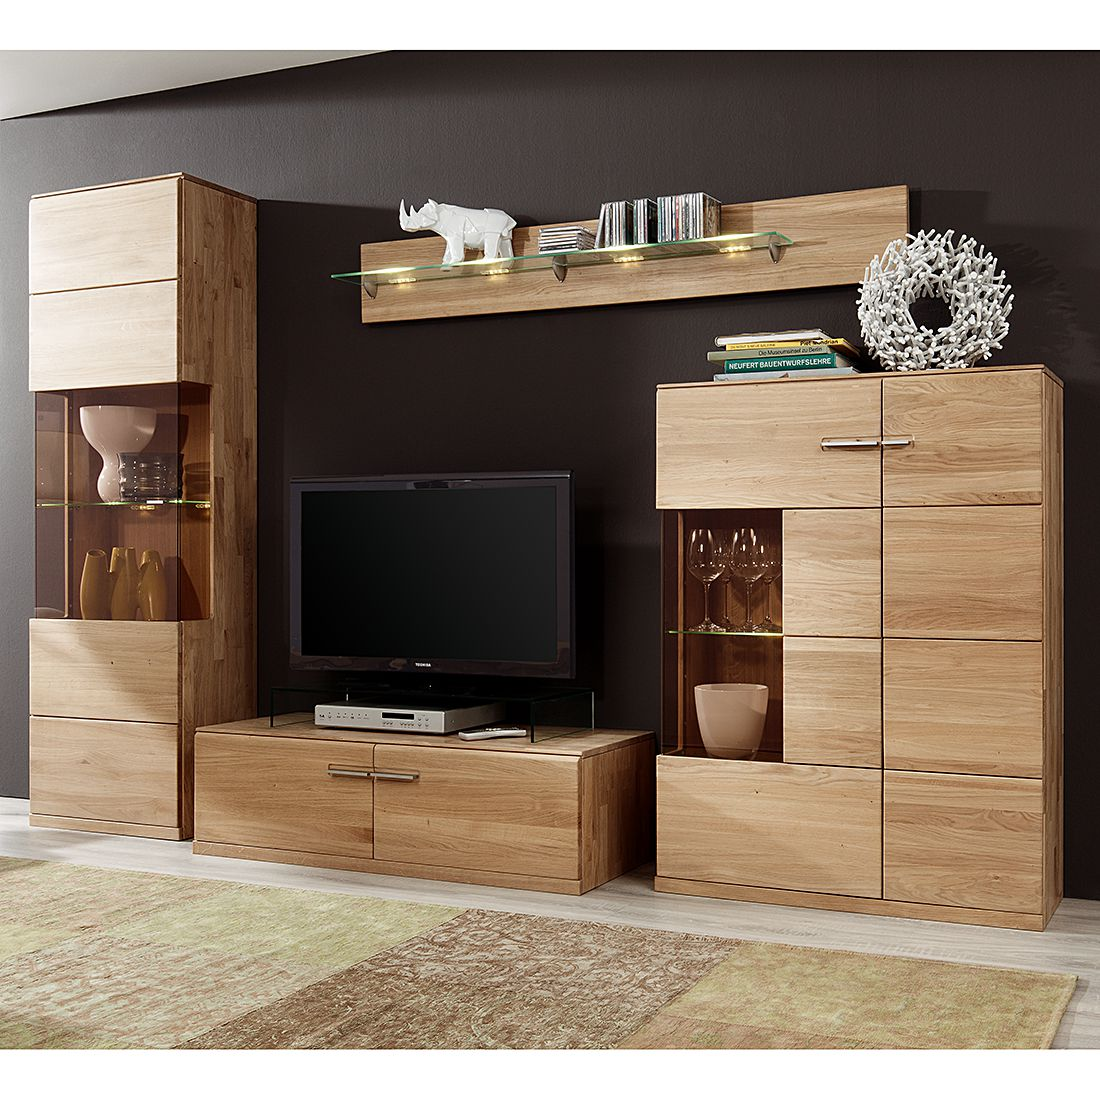 wohnwand oregon 4 teilig eiche massiv ge lt gewachst wohnwand 4 teilig inklusive. Black Bedroom Furniture Sets. Home Design Ideas